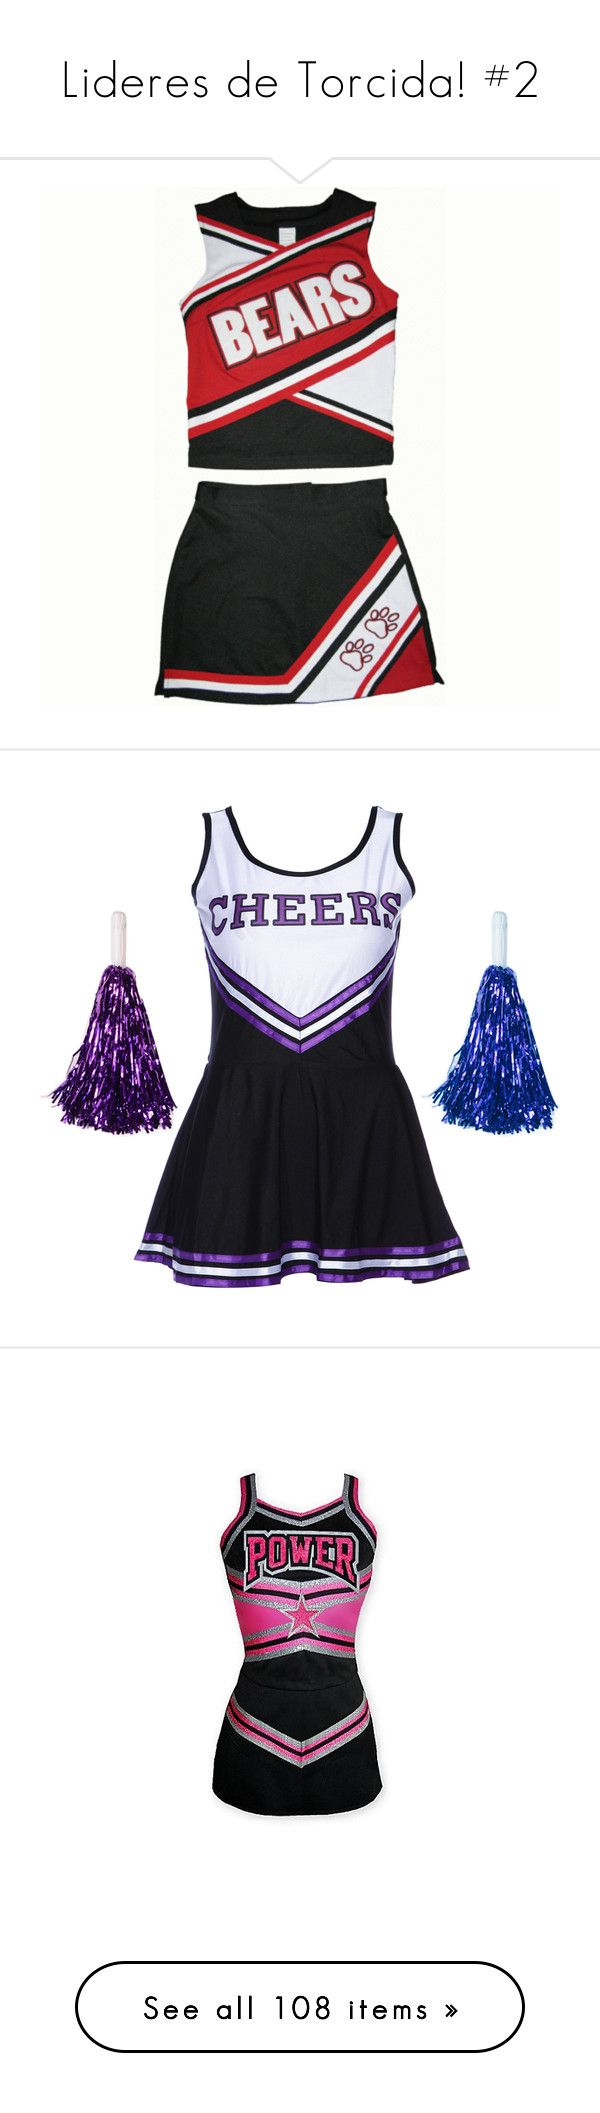 """""""Lideres de Torcida! #2"""" by franca-helo ❤ liked on Polyvore featuring cheer, cheerleading, sports, uniform, dresses, cheerleader, glee, vestidos, outfit and tops"""